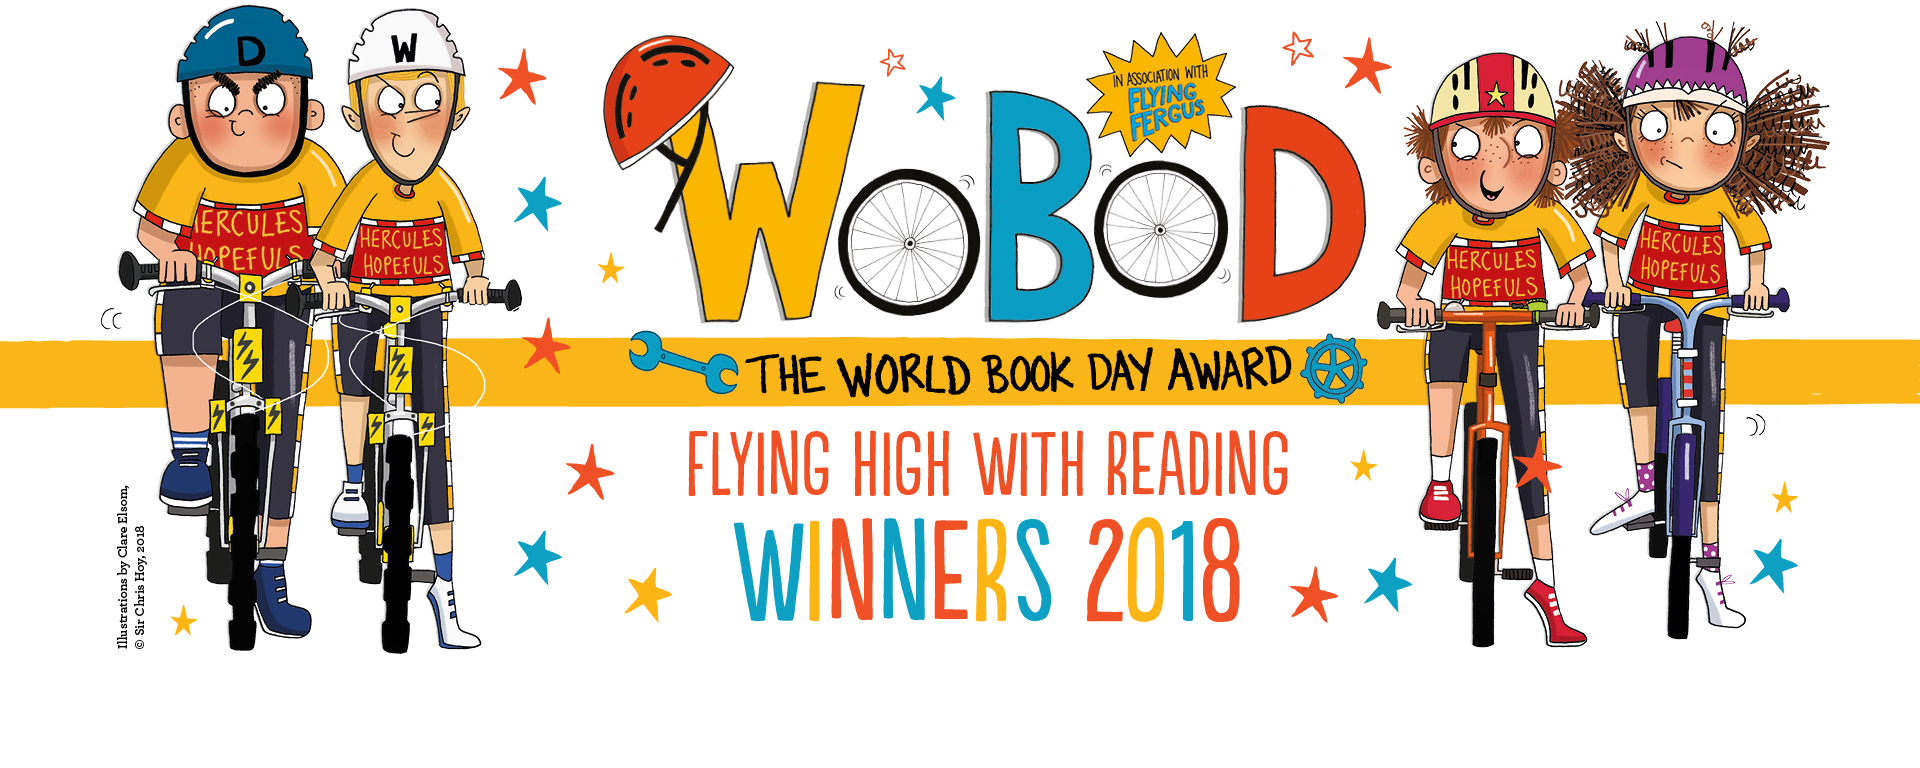 Visit to wobod winning. 2018 clipart world book day